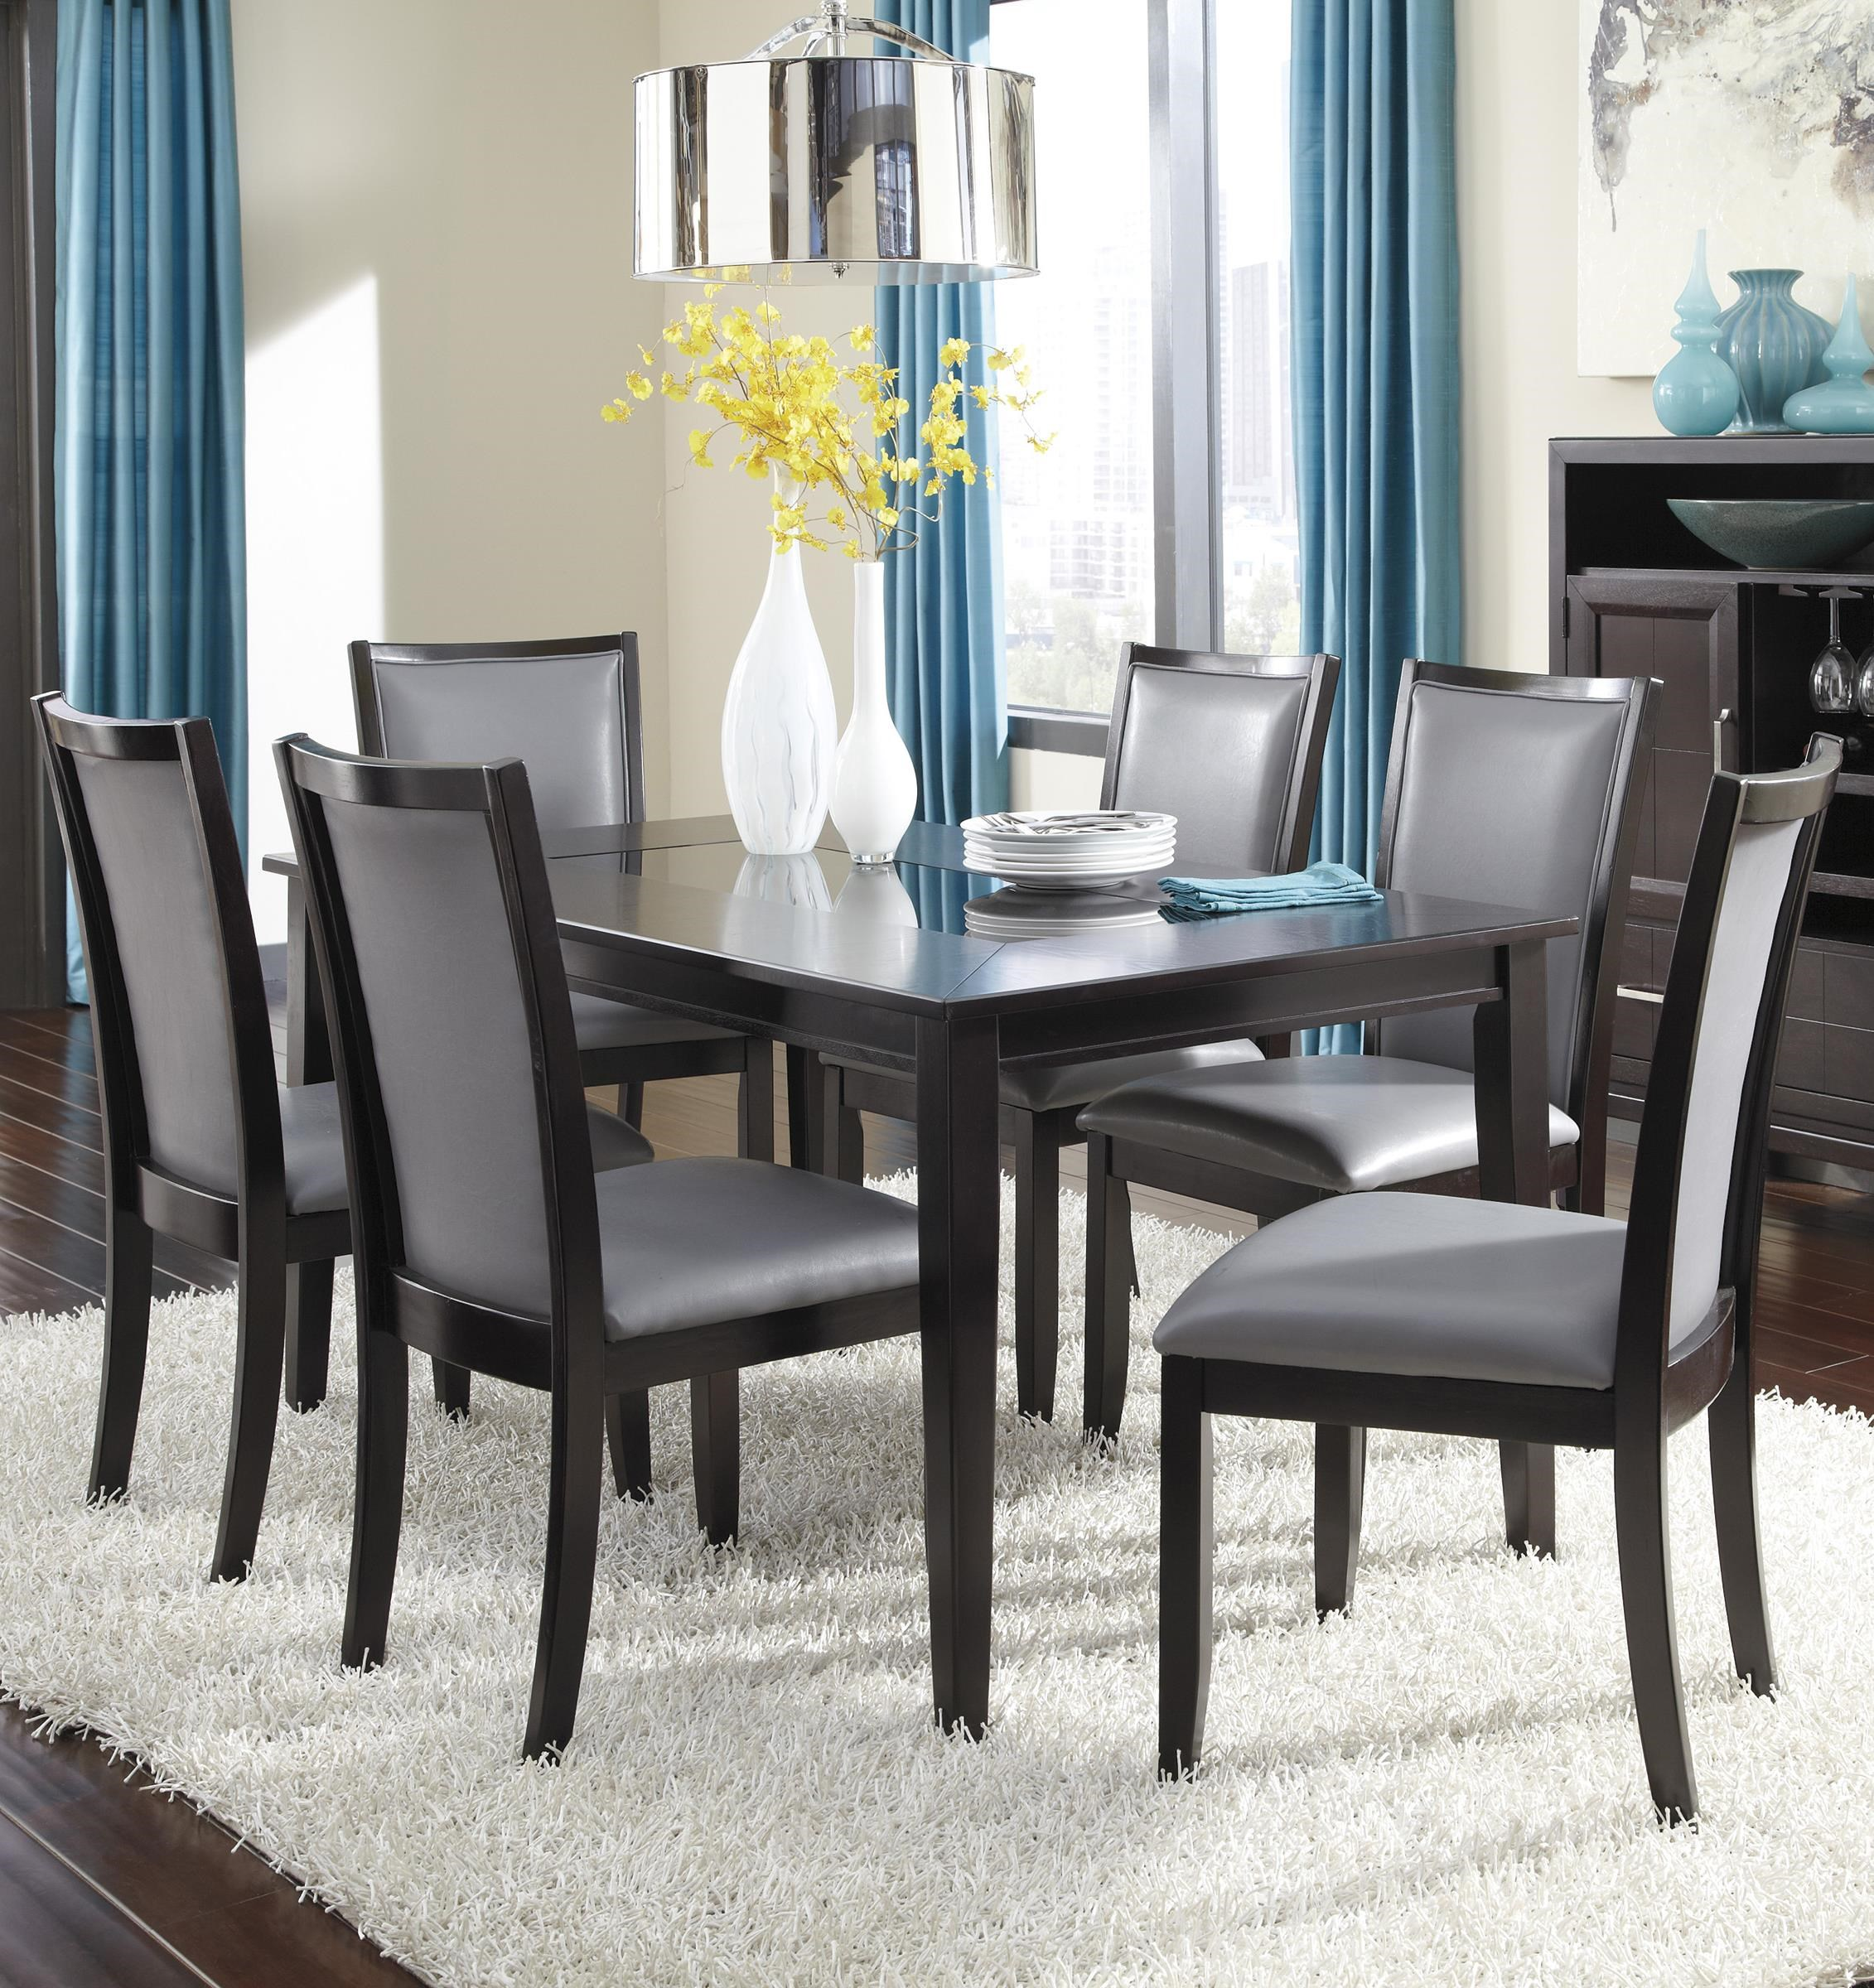 Ashley furniture kitchen tables used furniture kitchen tables ashley furniture signature - Ashley kitchen table sets ...